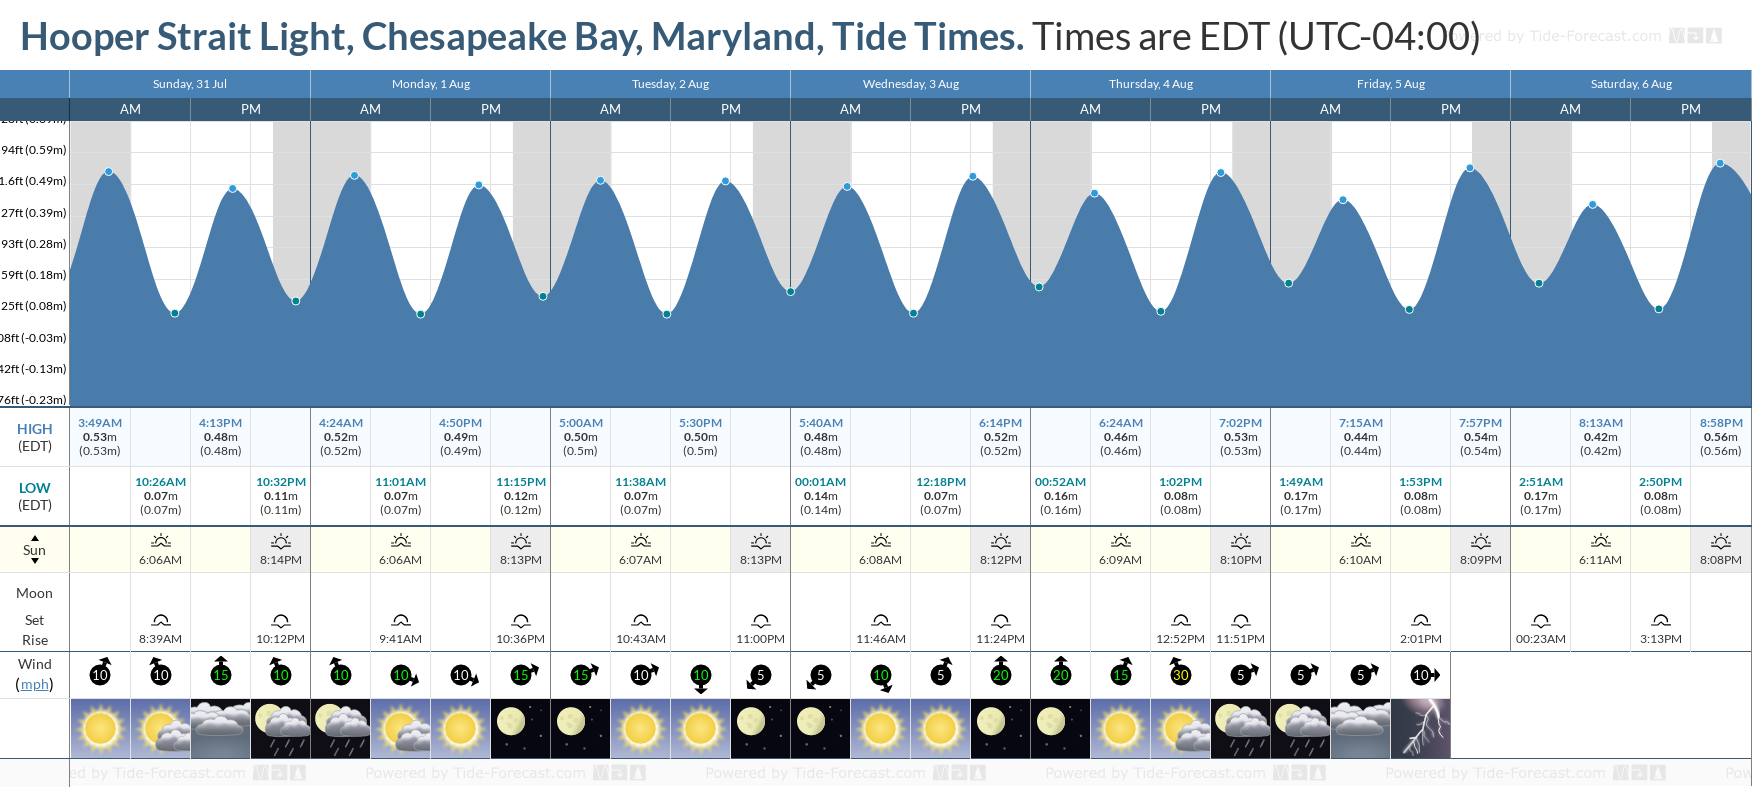 Hooper Strait Light, Chesapeake Bay, Maryland Tide Chart including high and low tide tide times for the next 7 days